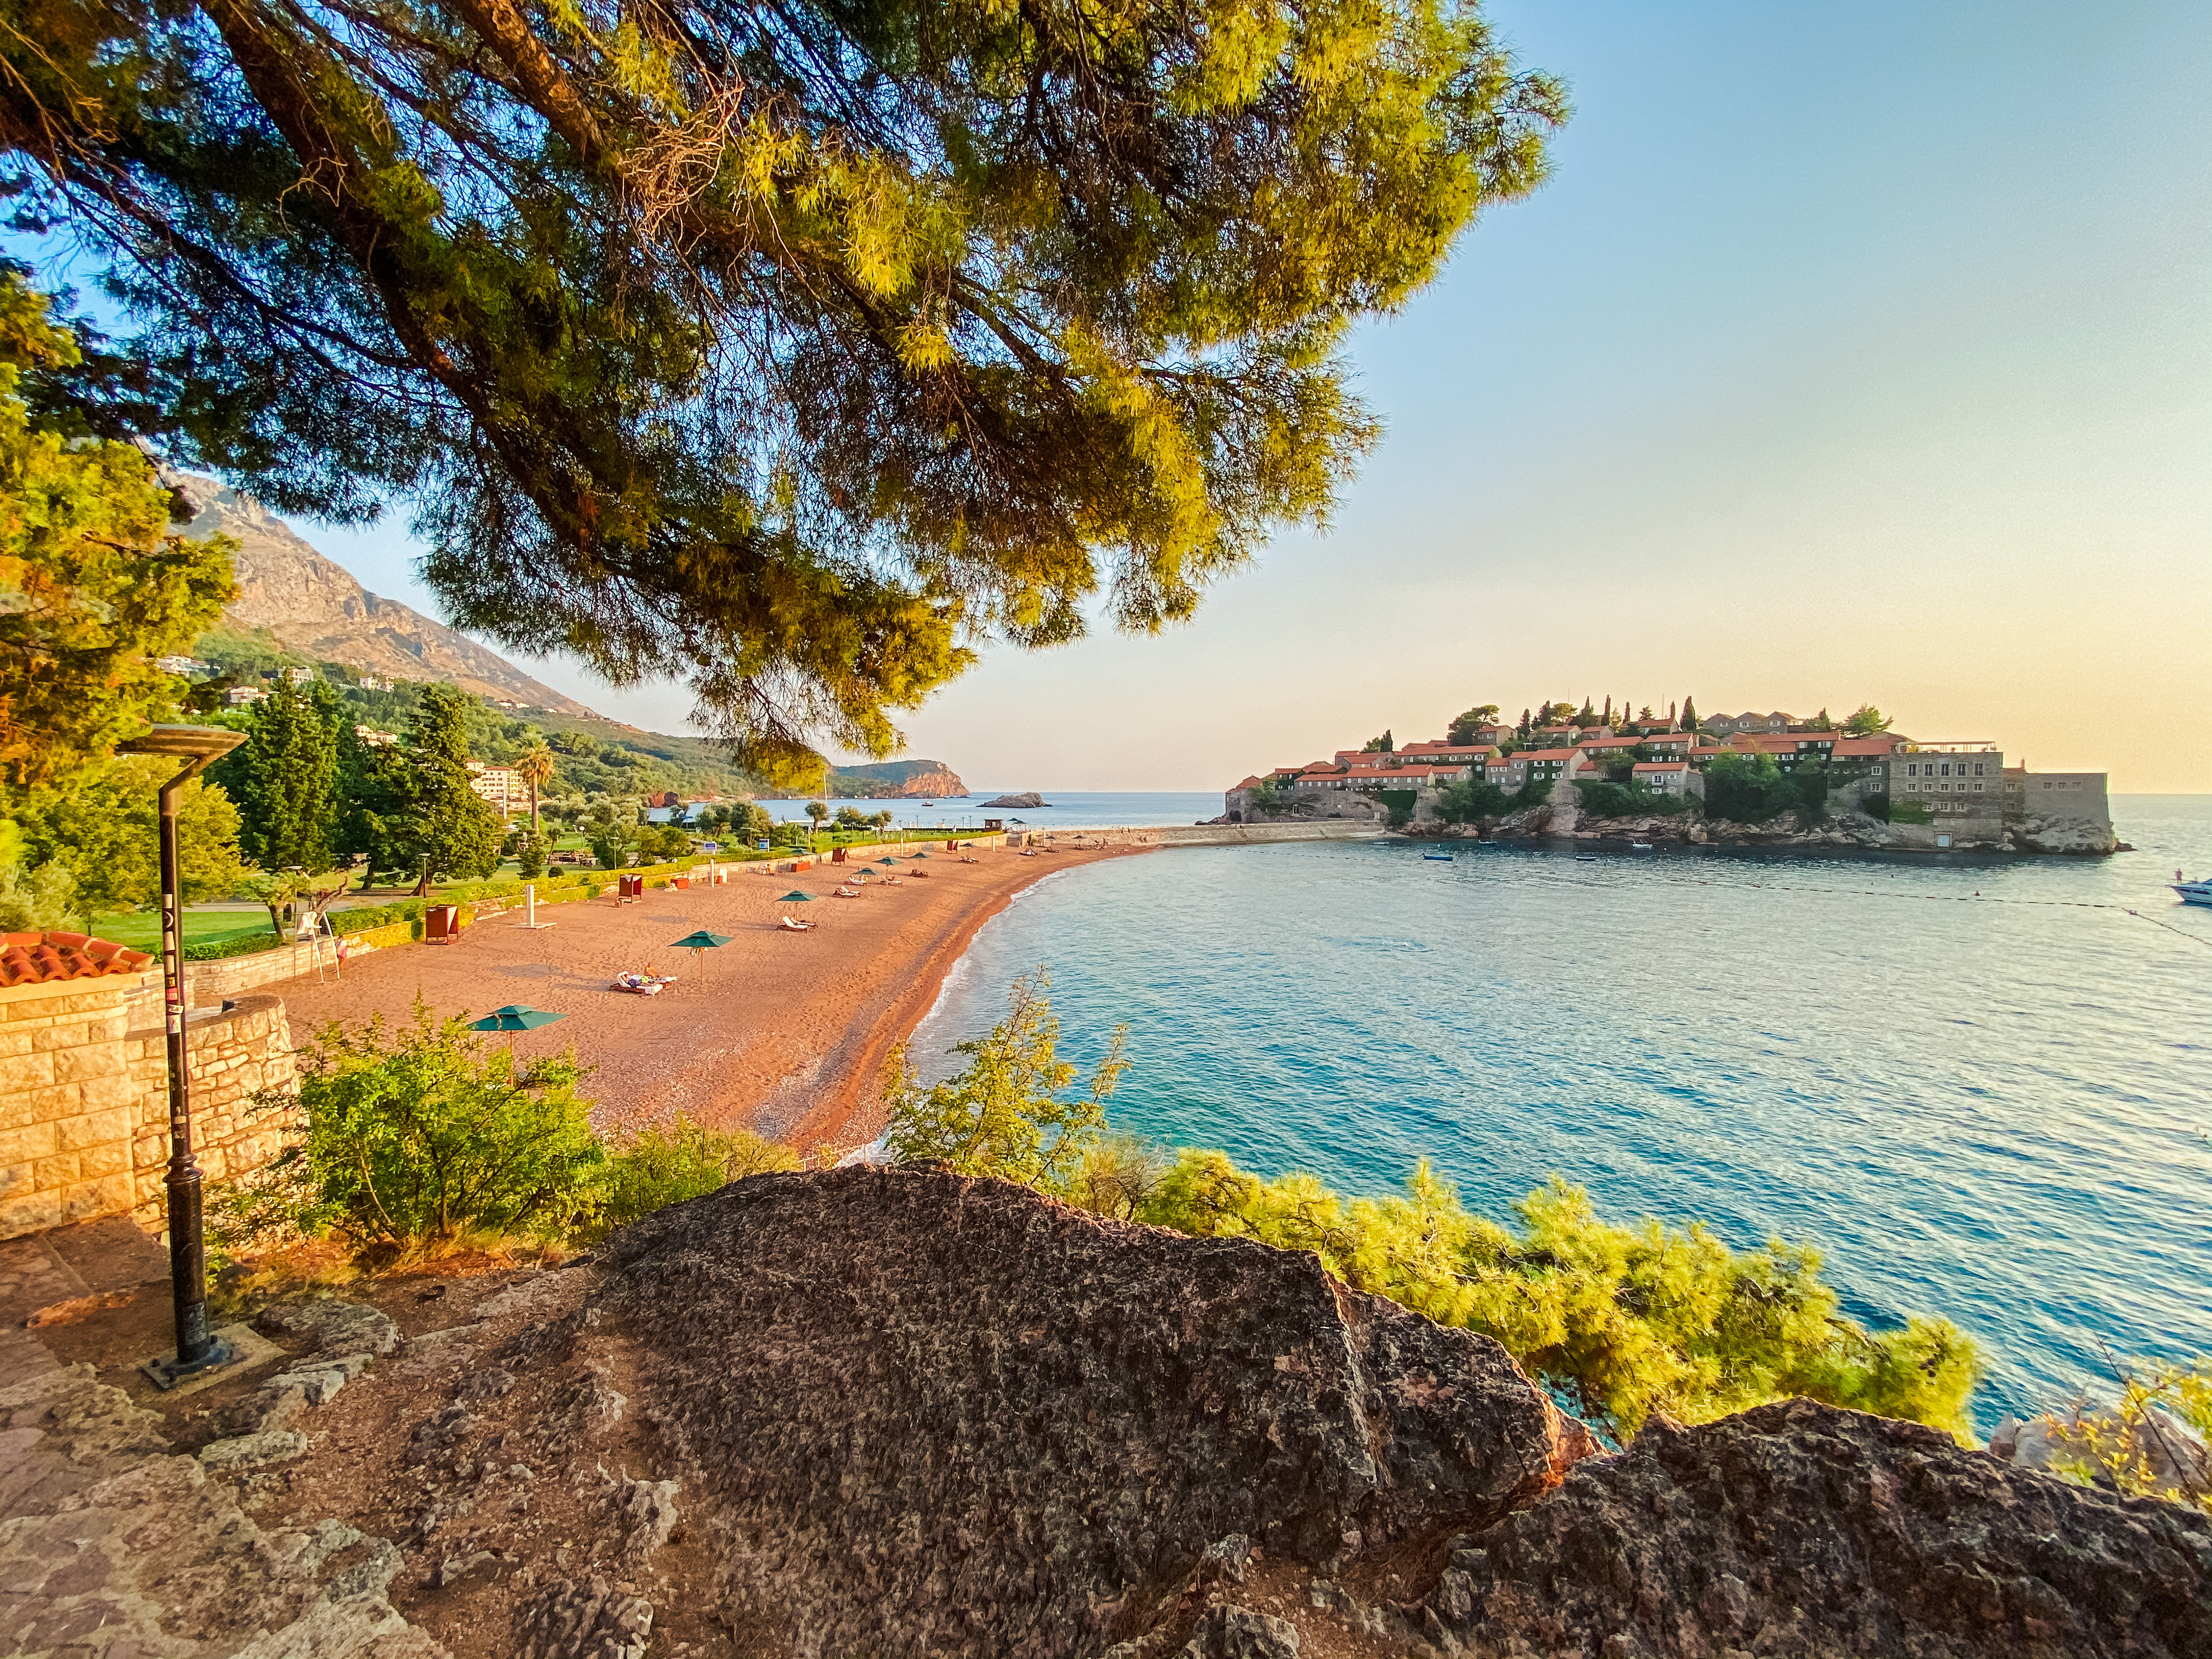 The Golden Visa Hotspot – Montenegro is the Number One Choice